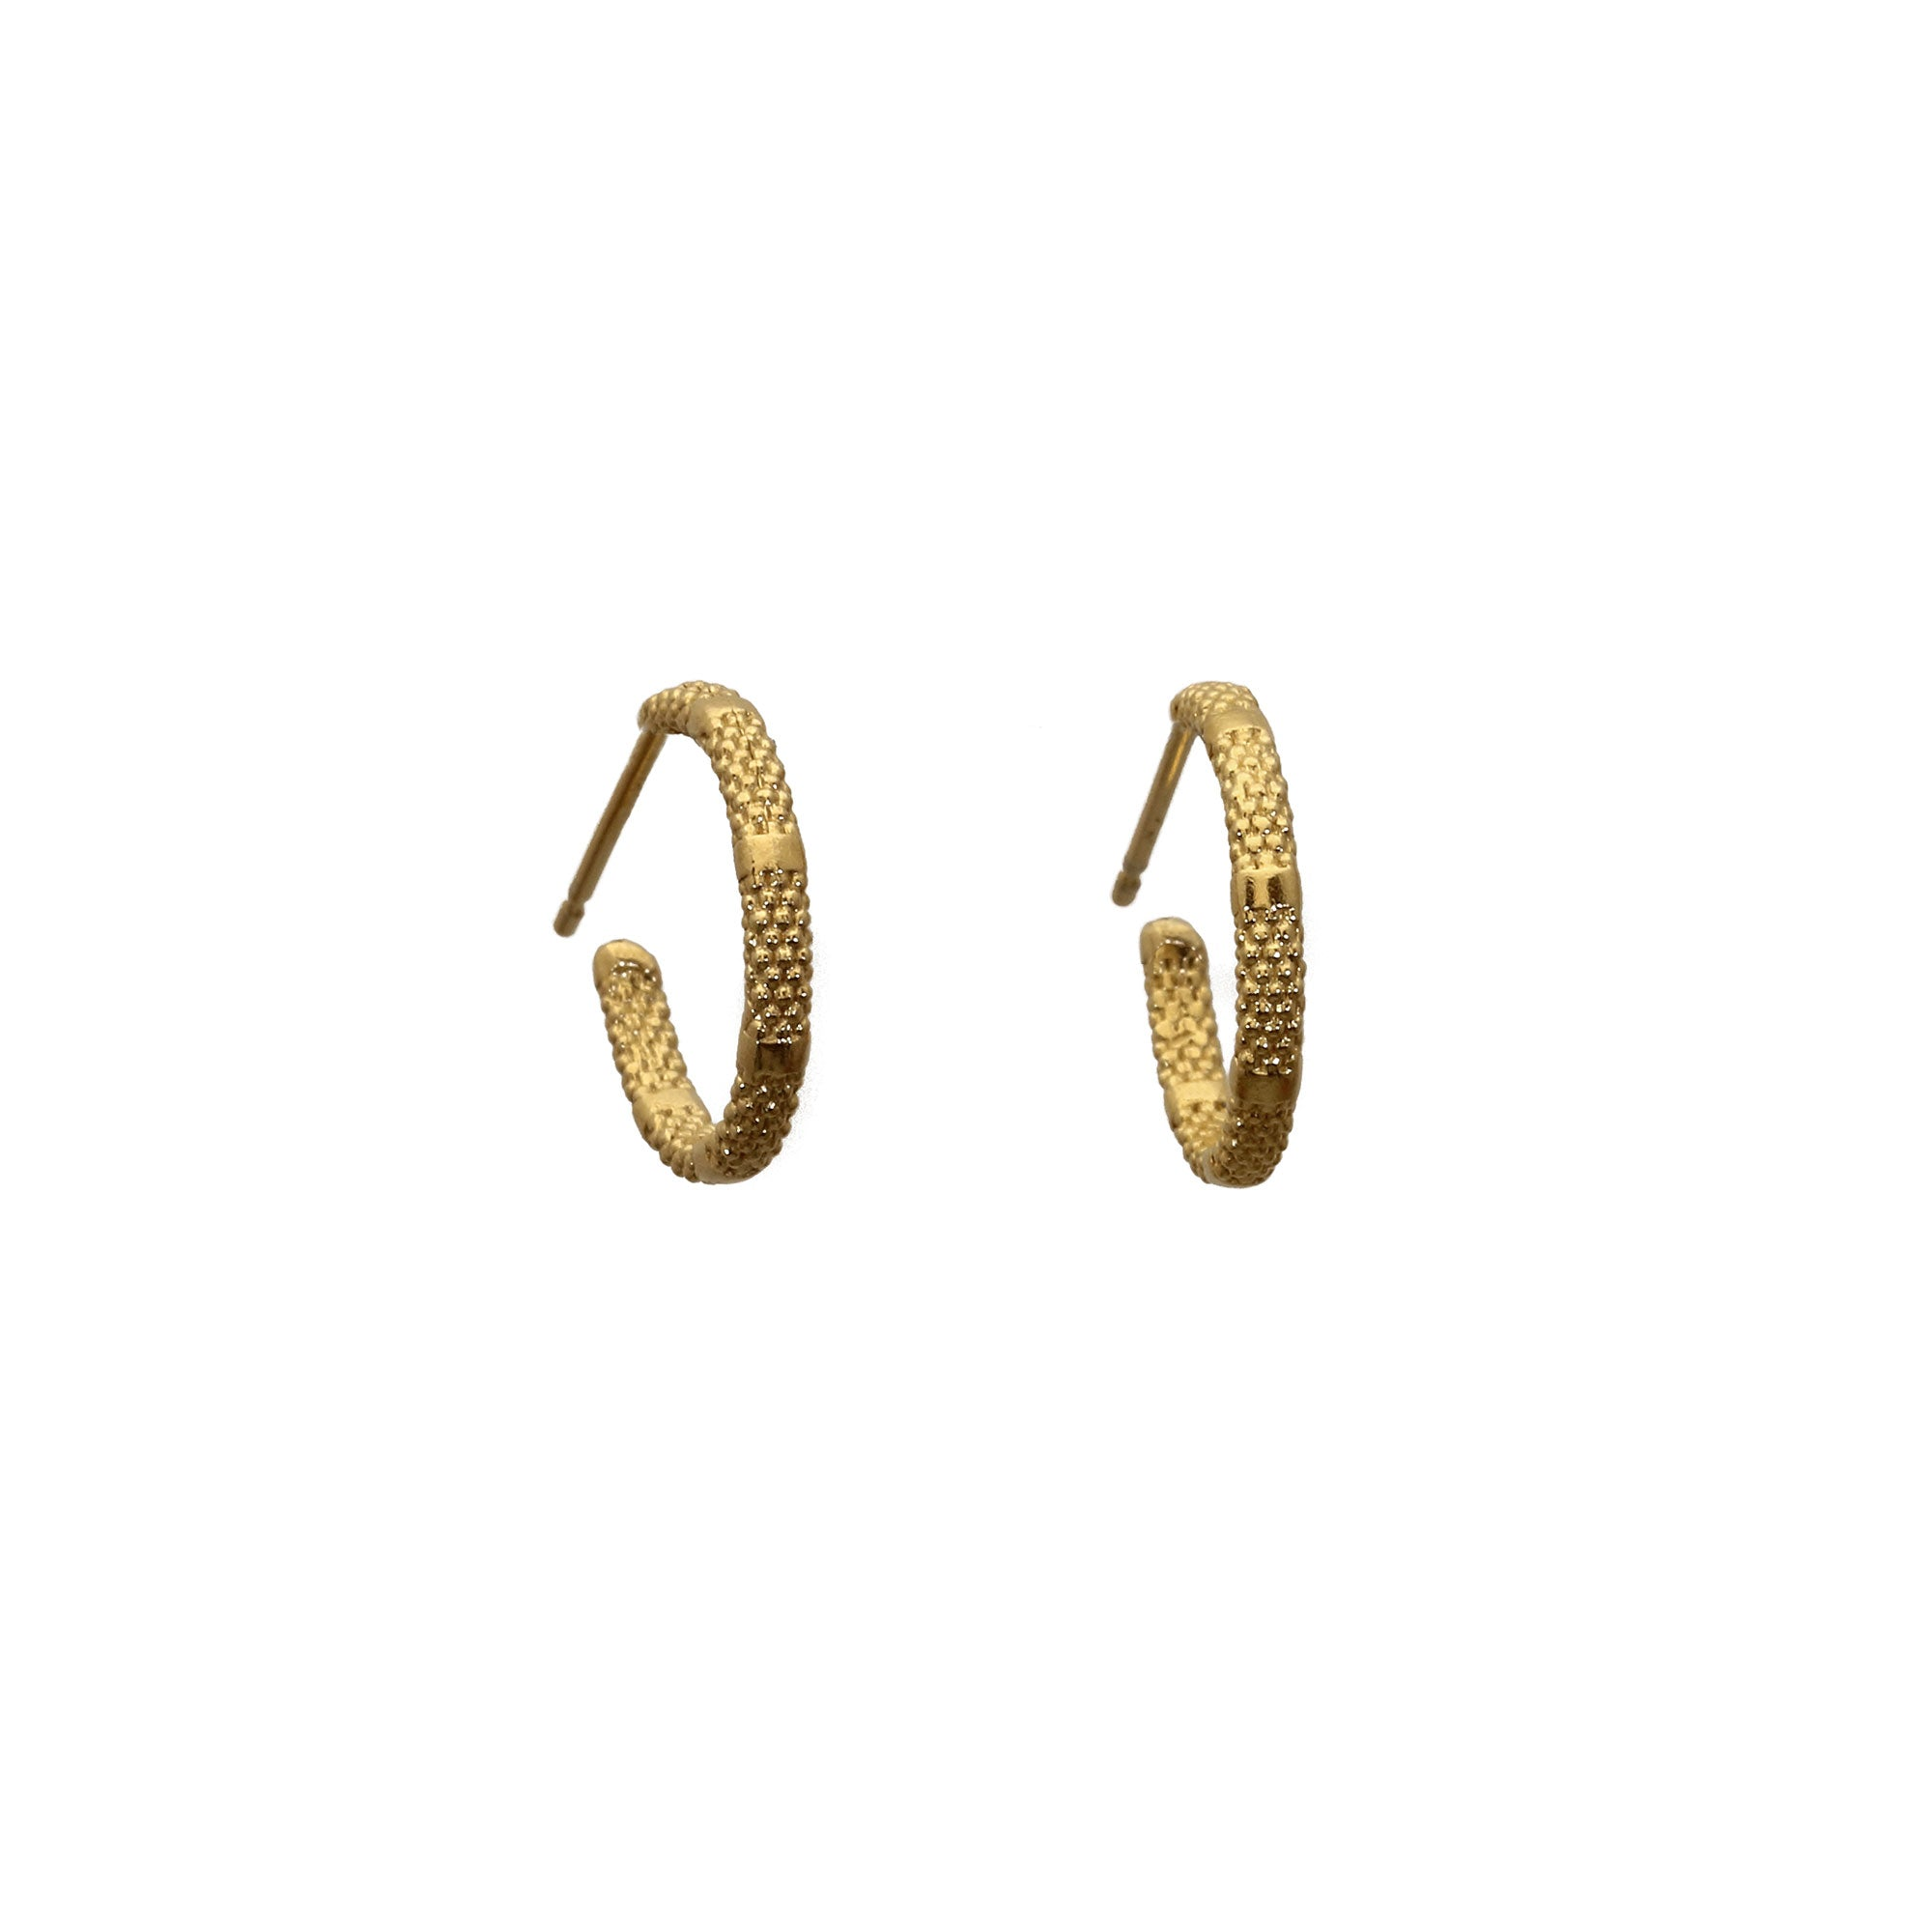 Yellow gold hoop earrings with alternating rough and smooth texture